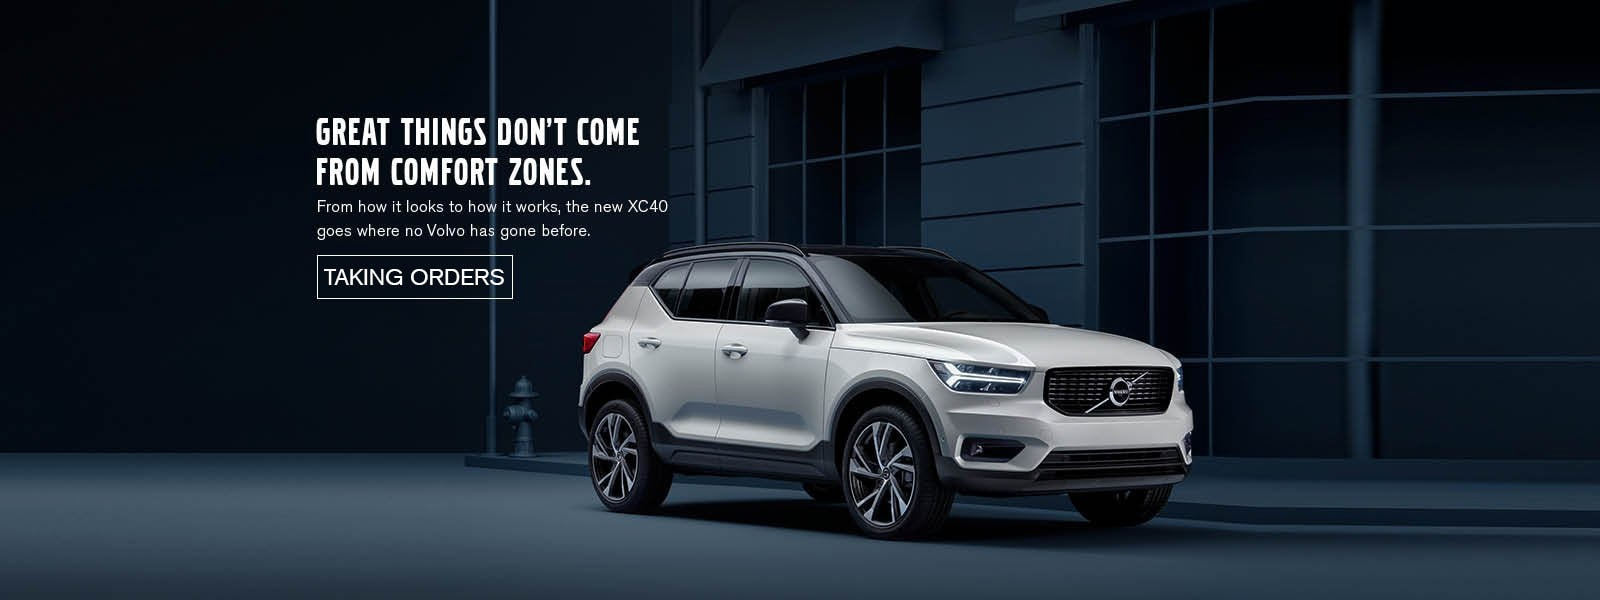 New 2017-2018 Volvo & Used Cars in Austin TX | Near Bee Cave TX, Lakeway TX & Pflugerville TX ...